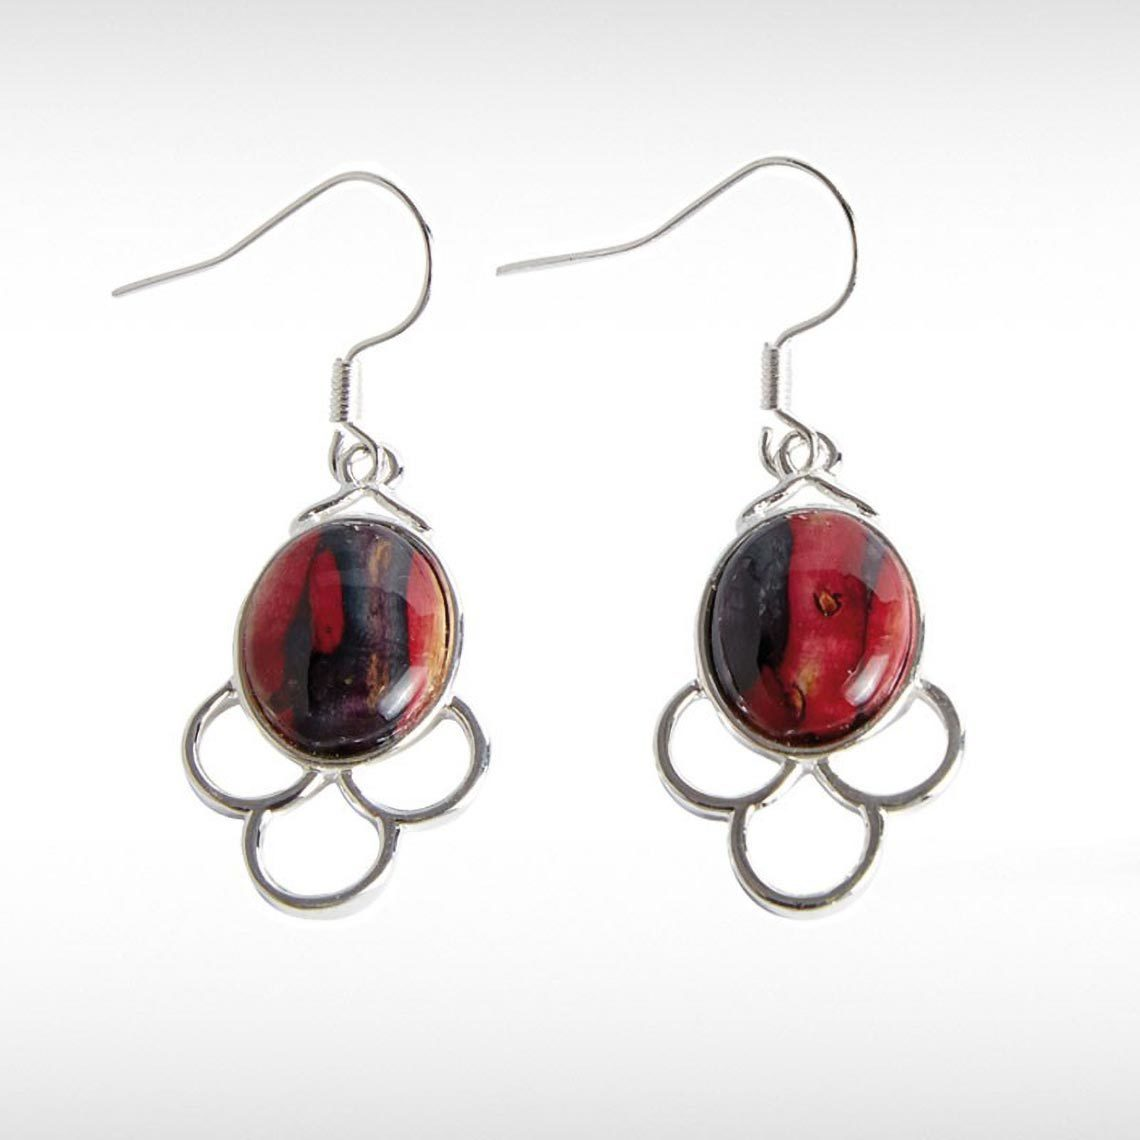 Bonn Earrings